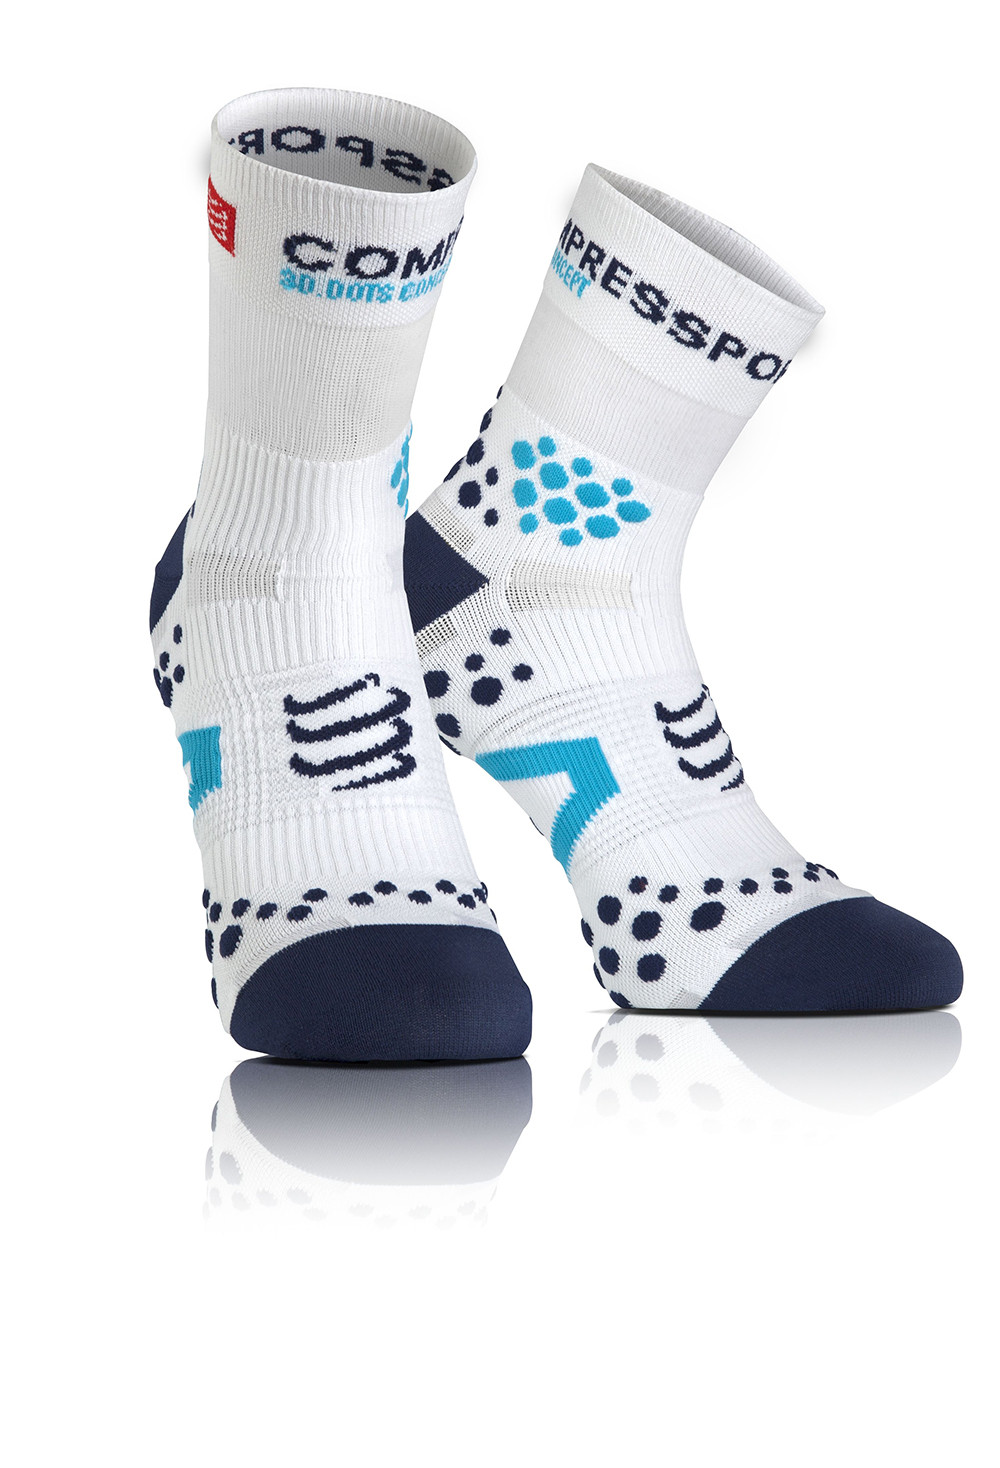 Compressport Pro Racing V2 1 Bike Hi Compressiesokken